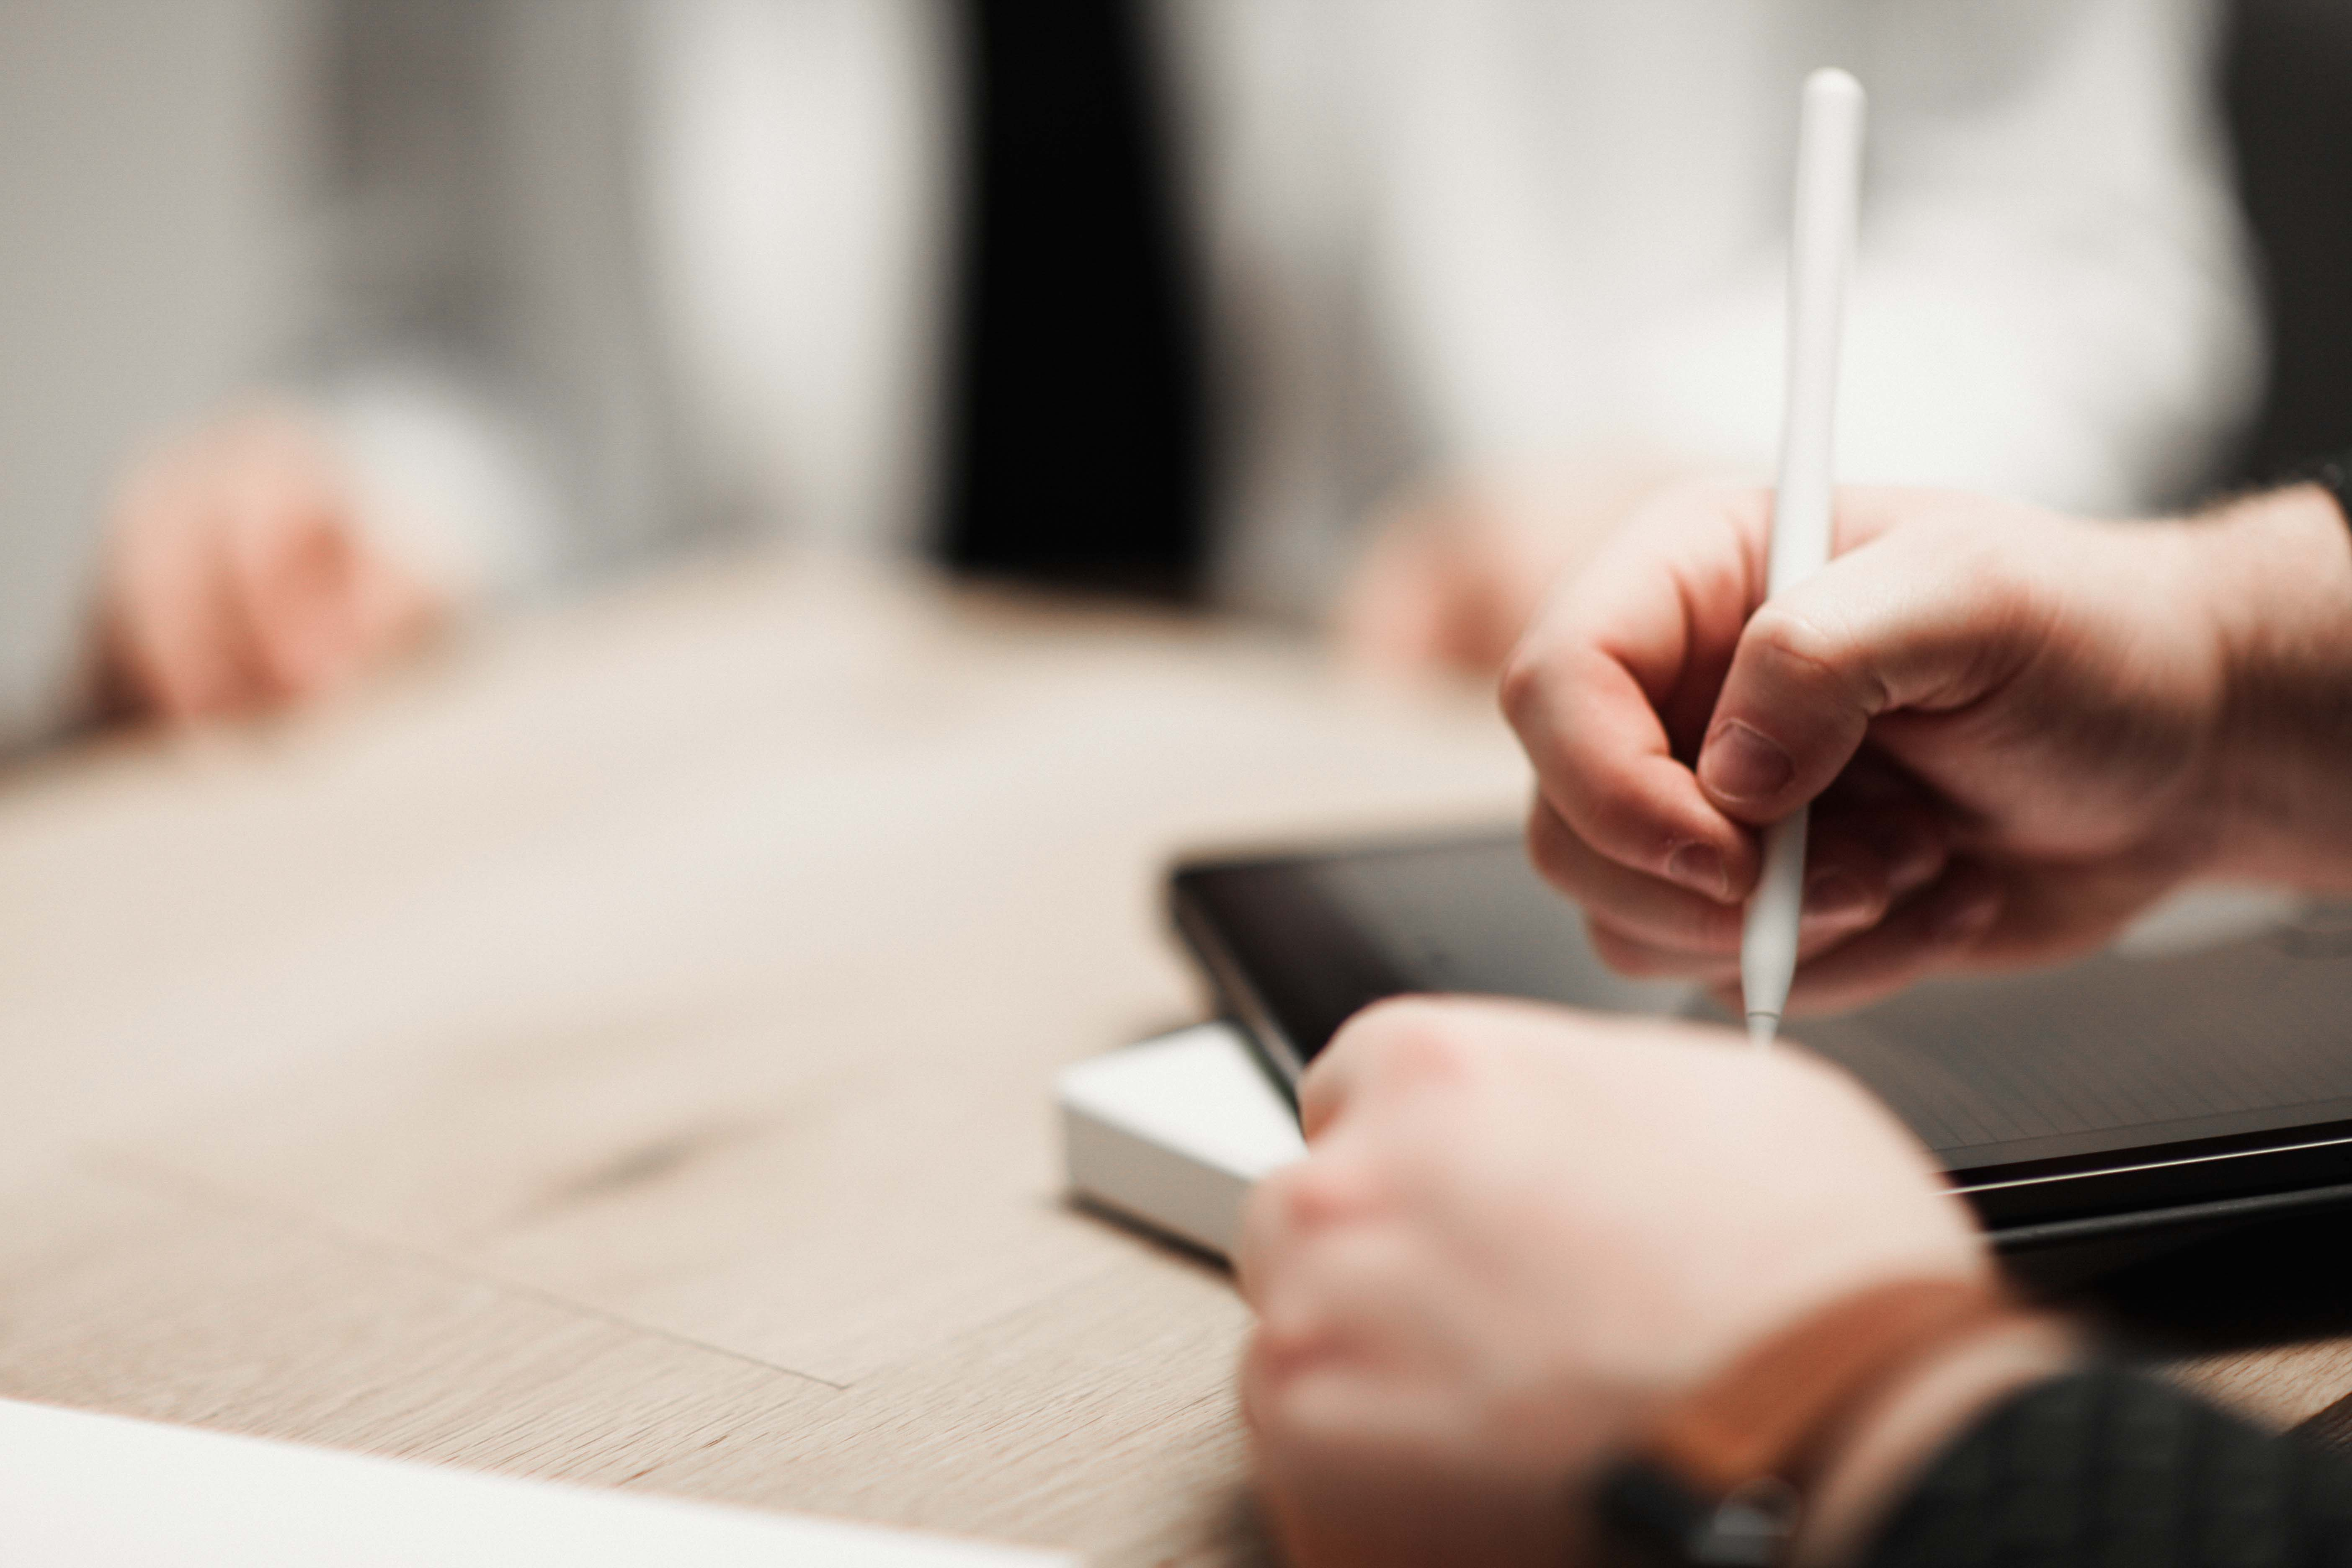 Close-up of person using a stylus to write on an iPad